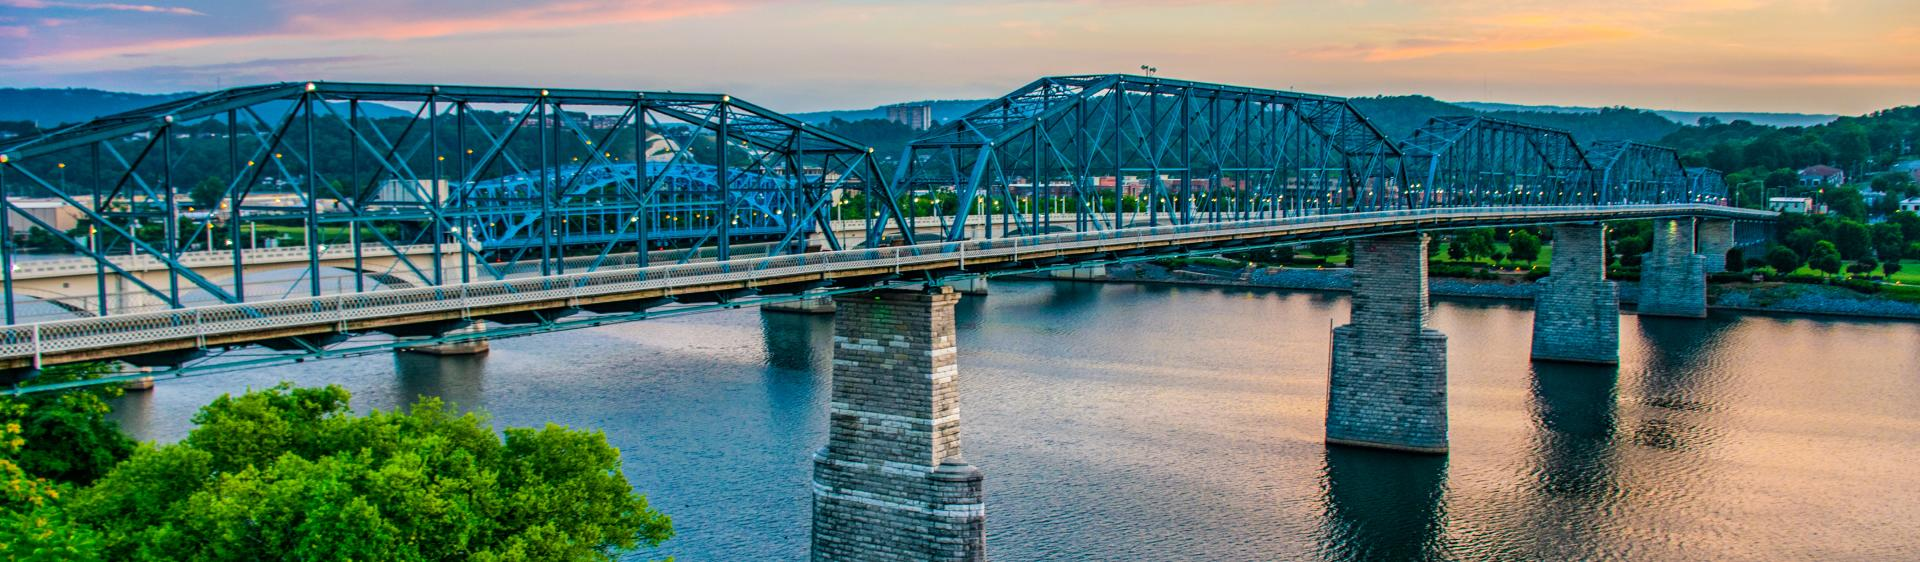 Walnut Street Bridge_Sunset